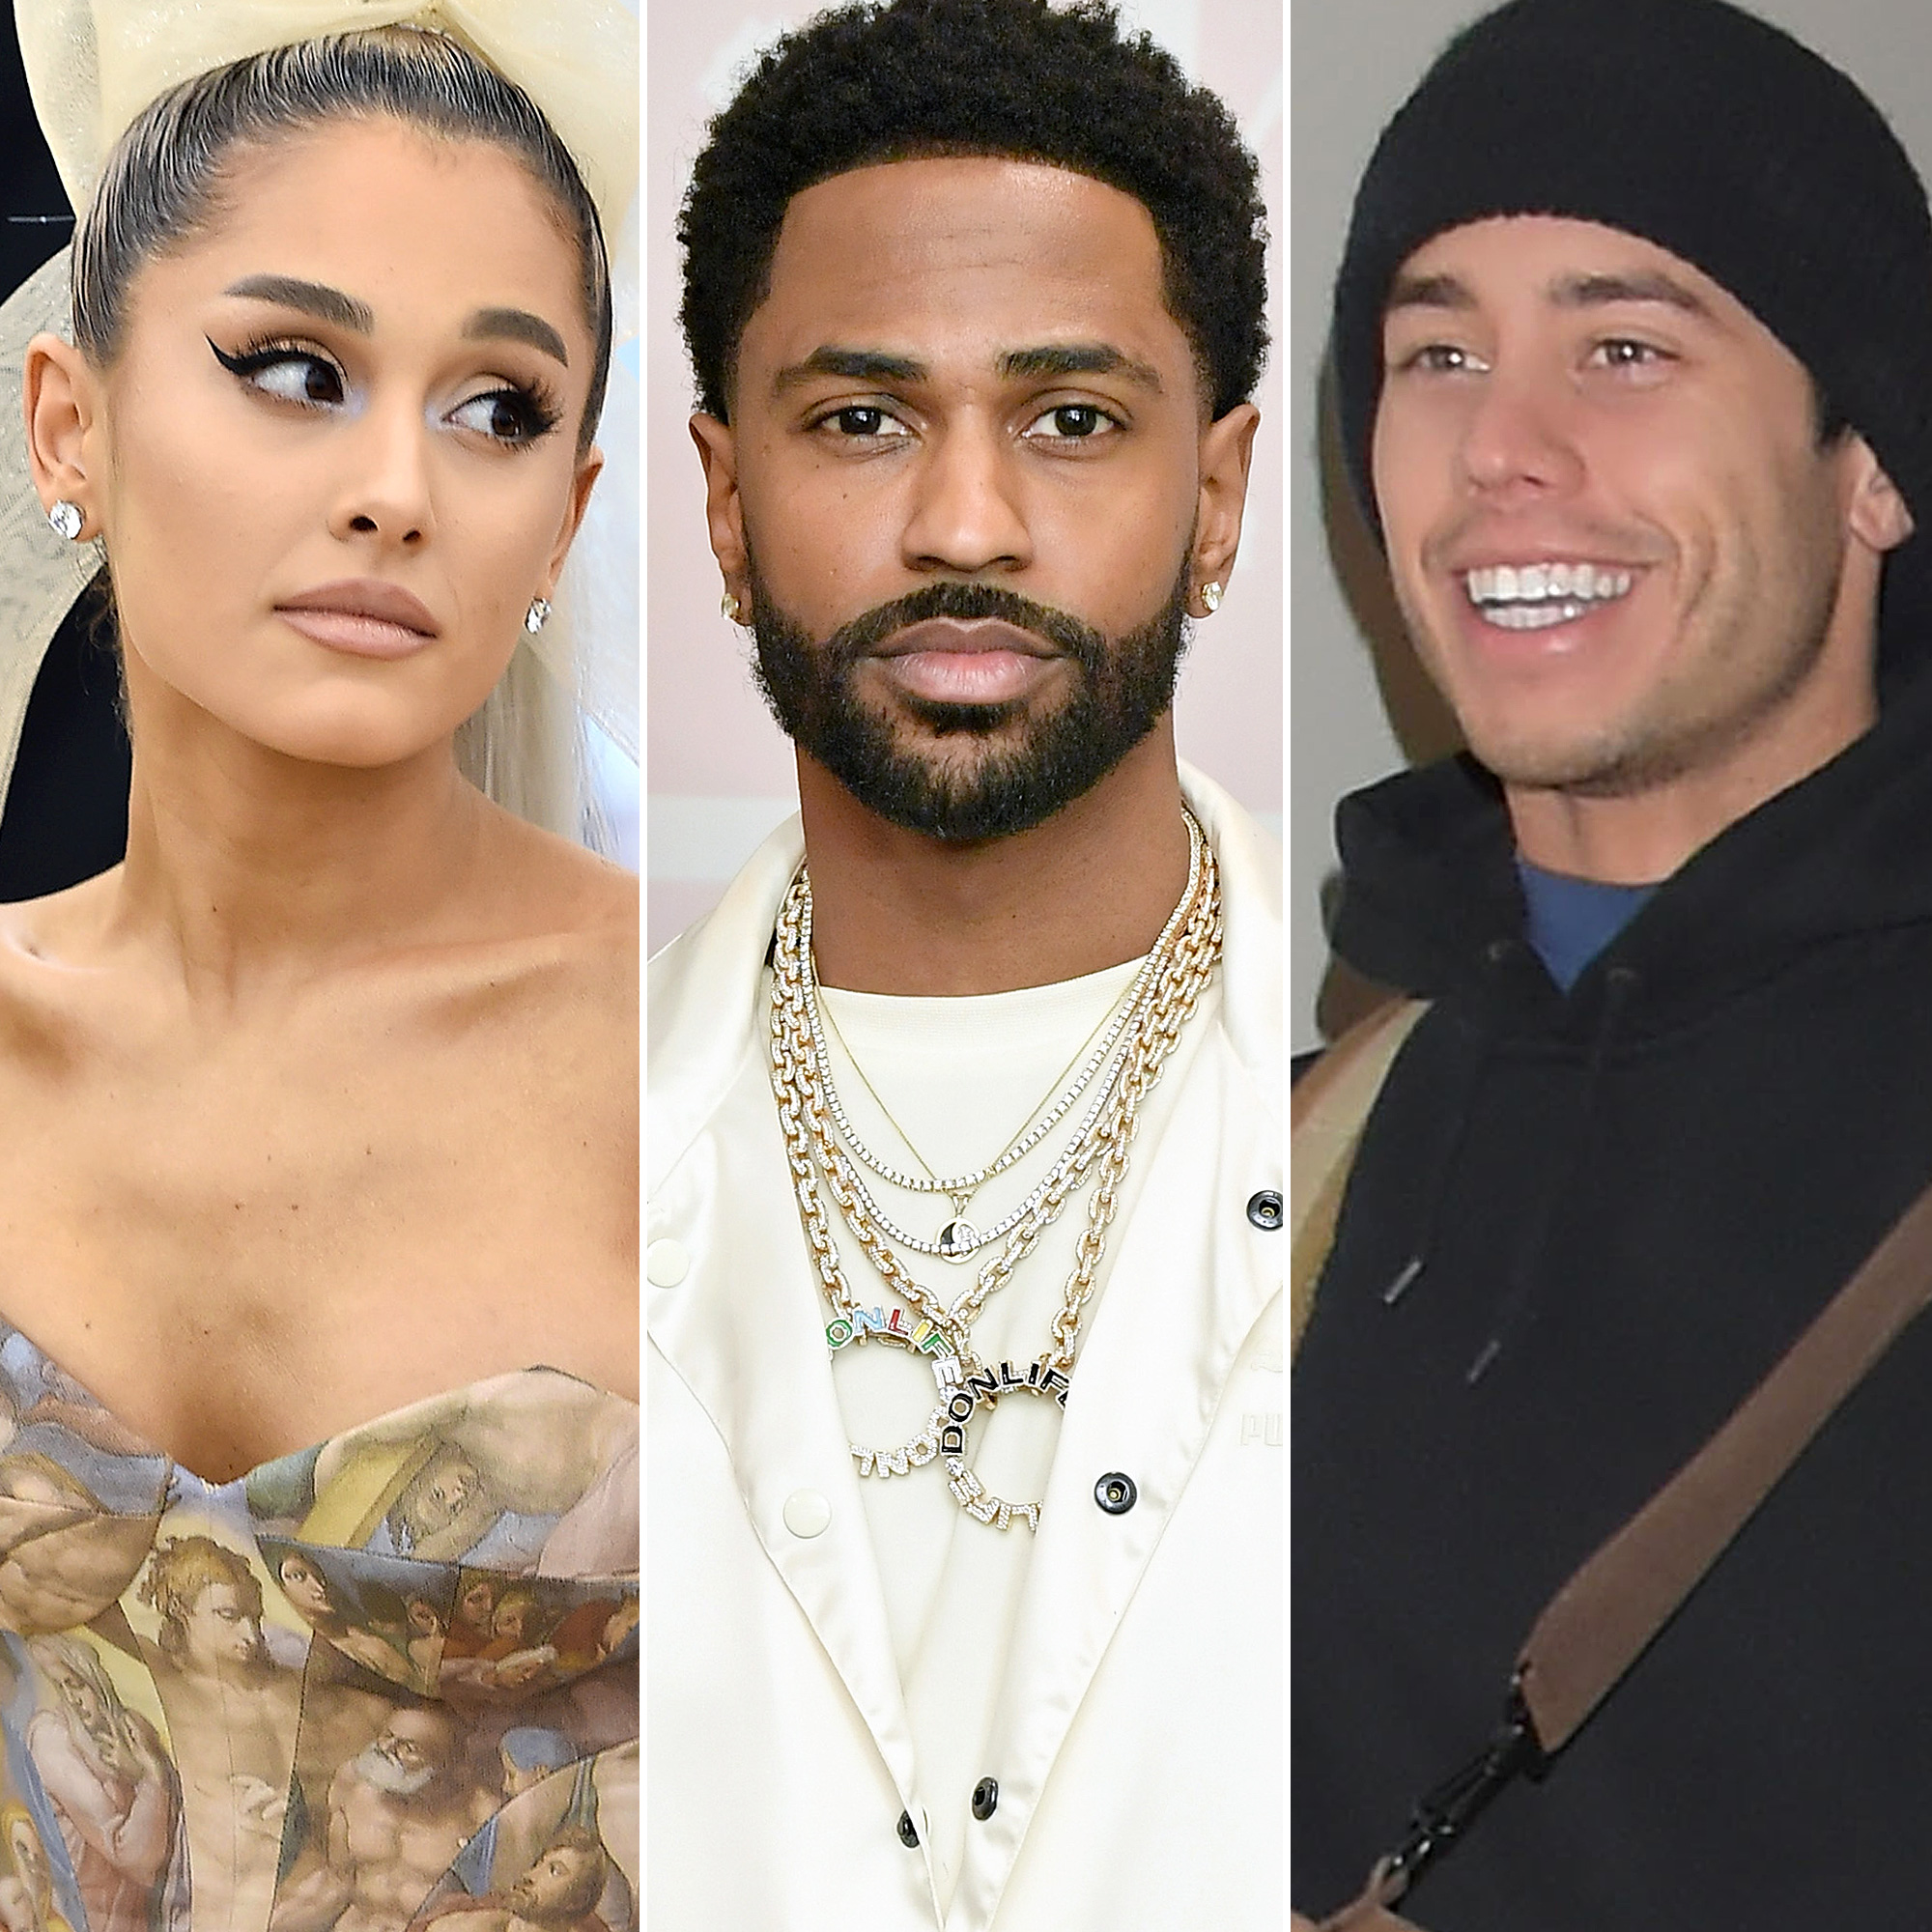 Download Thank You Next By Ariana Grande: Ariana Grande: Big Sean And Ricky Heard 'Thank U, Next